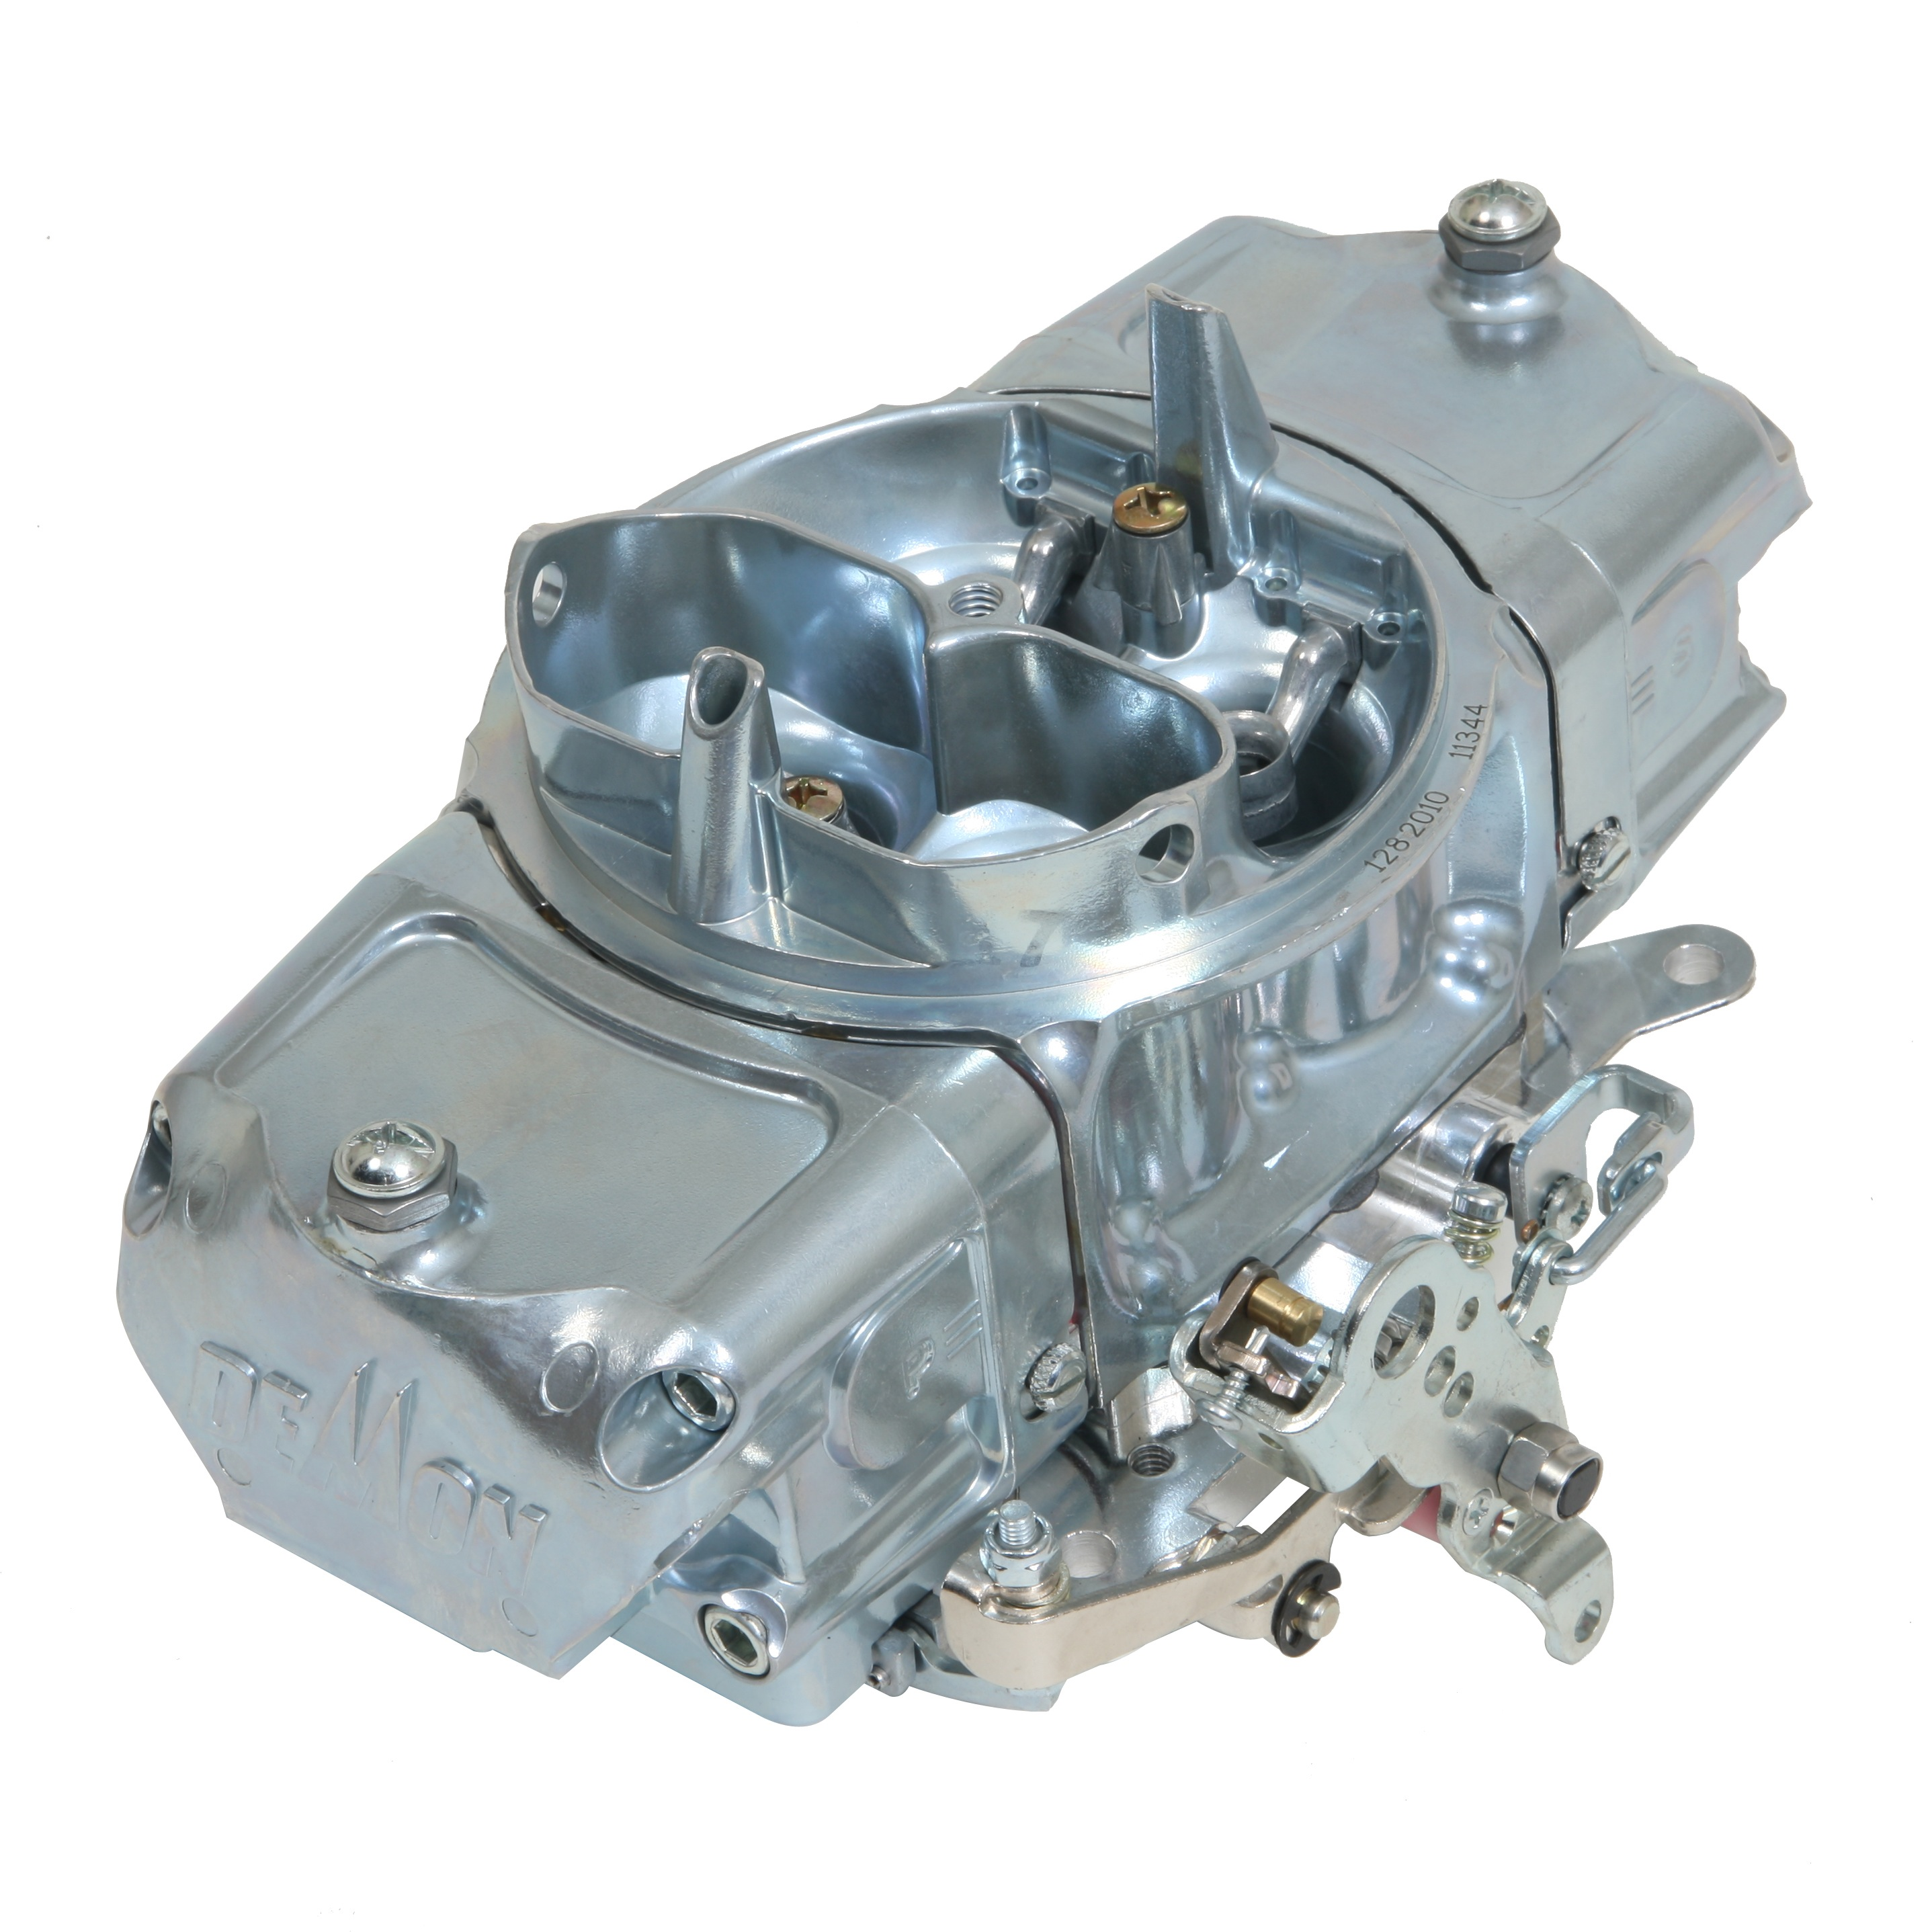 Find great deals on eBay for summit racing carburetors. Shop with confidence.